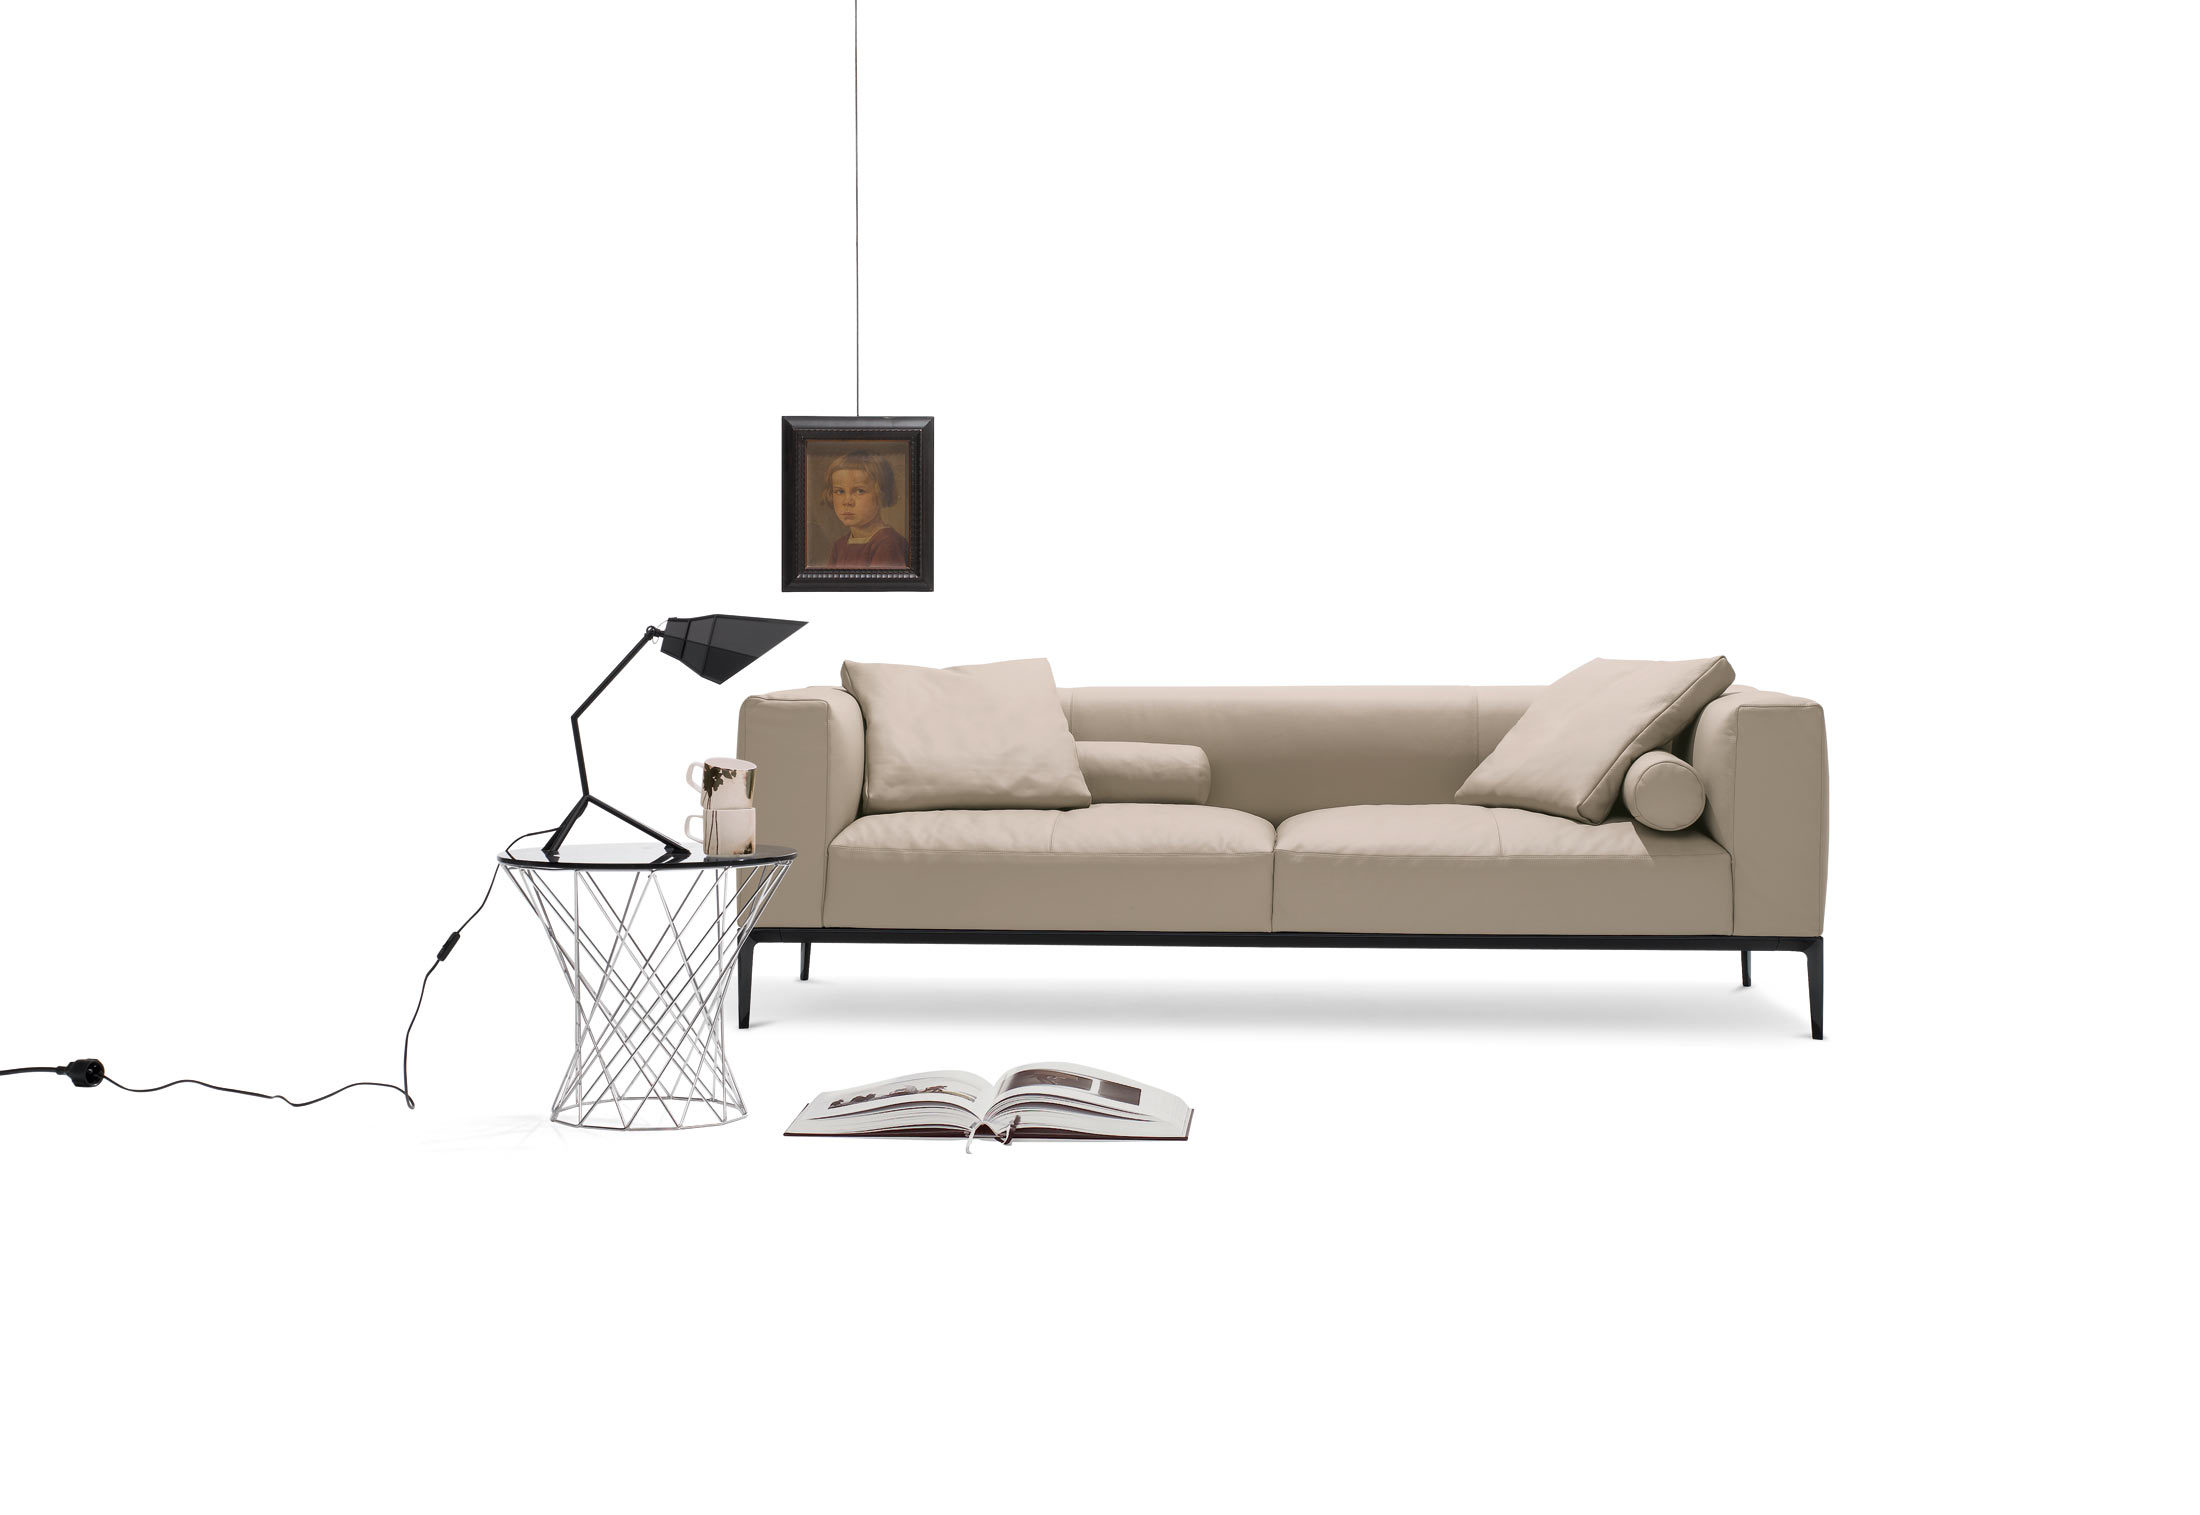 jaan living sofa by walter knoll stylepark. Black Bedroom Furniture Sets. Home Design Ideas